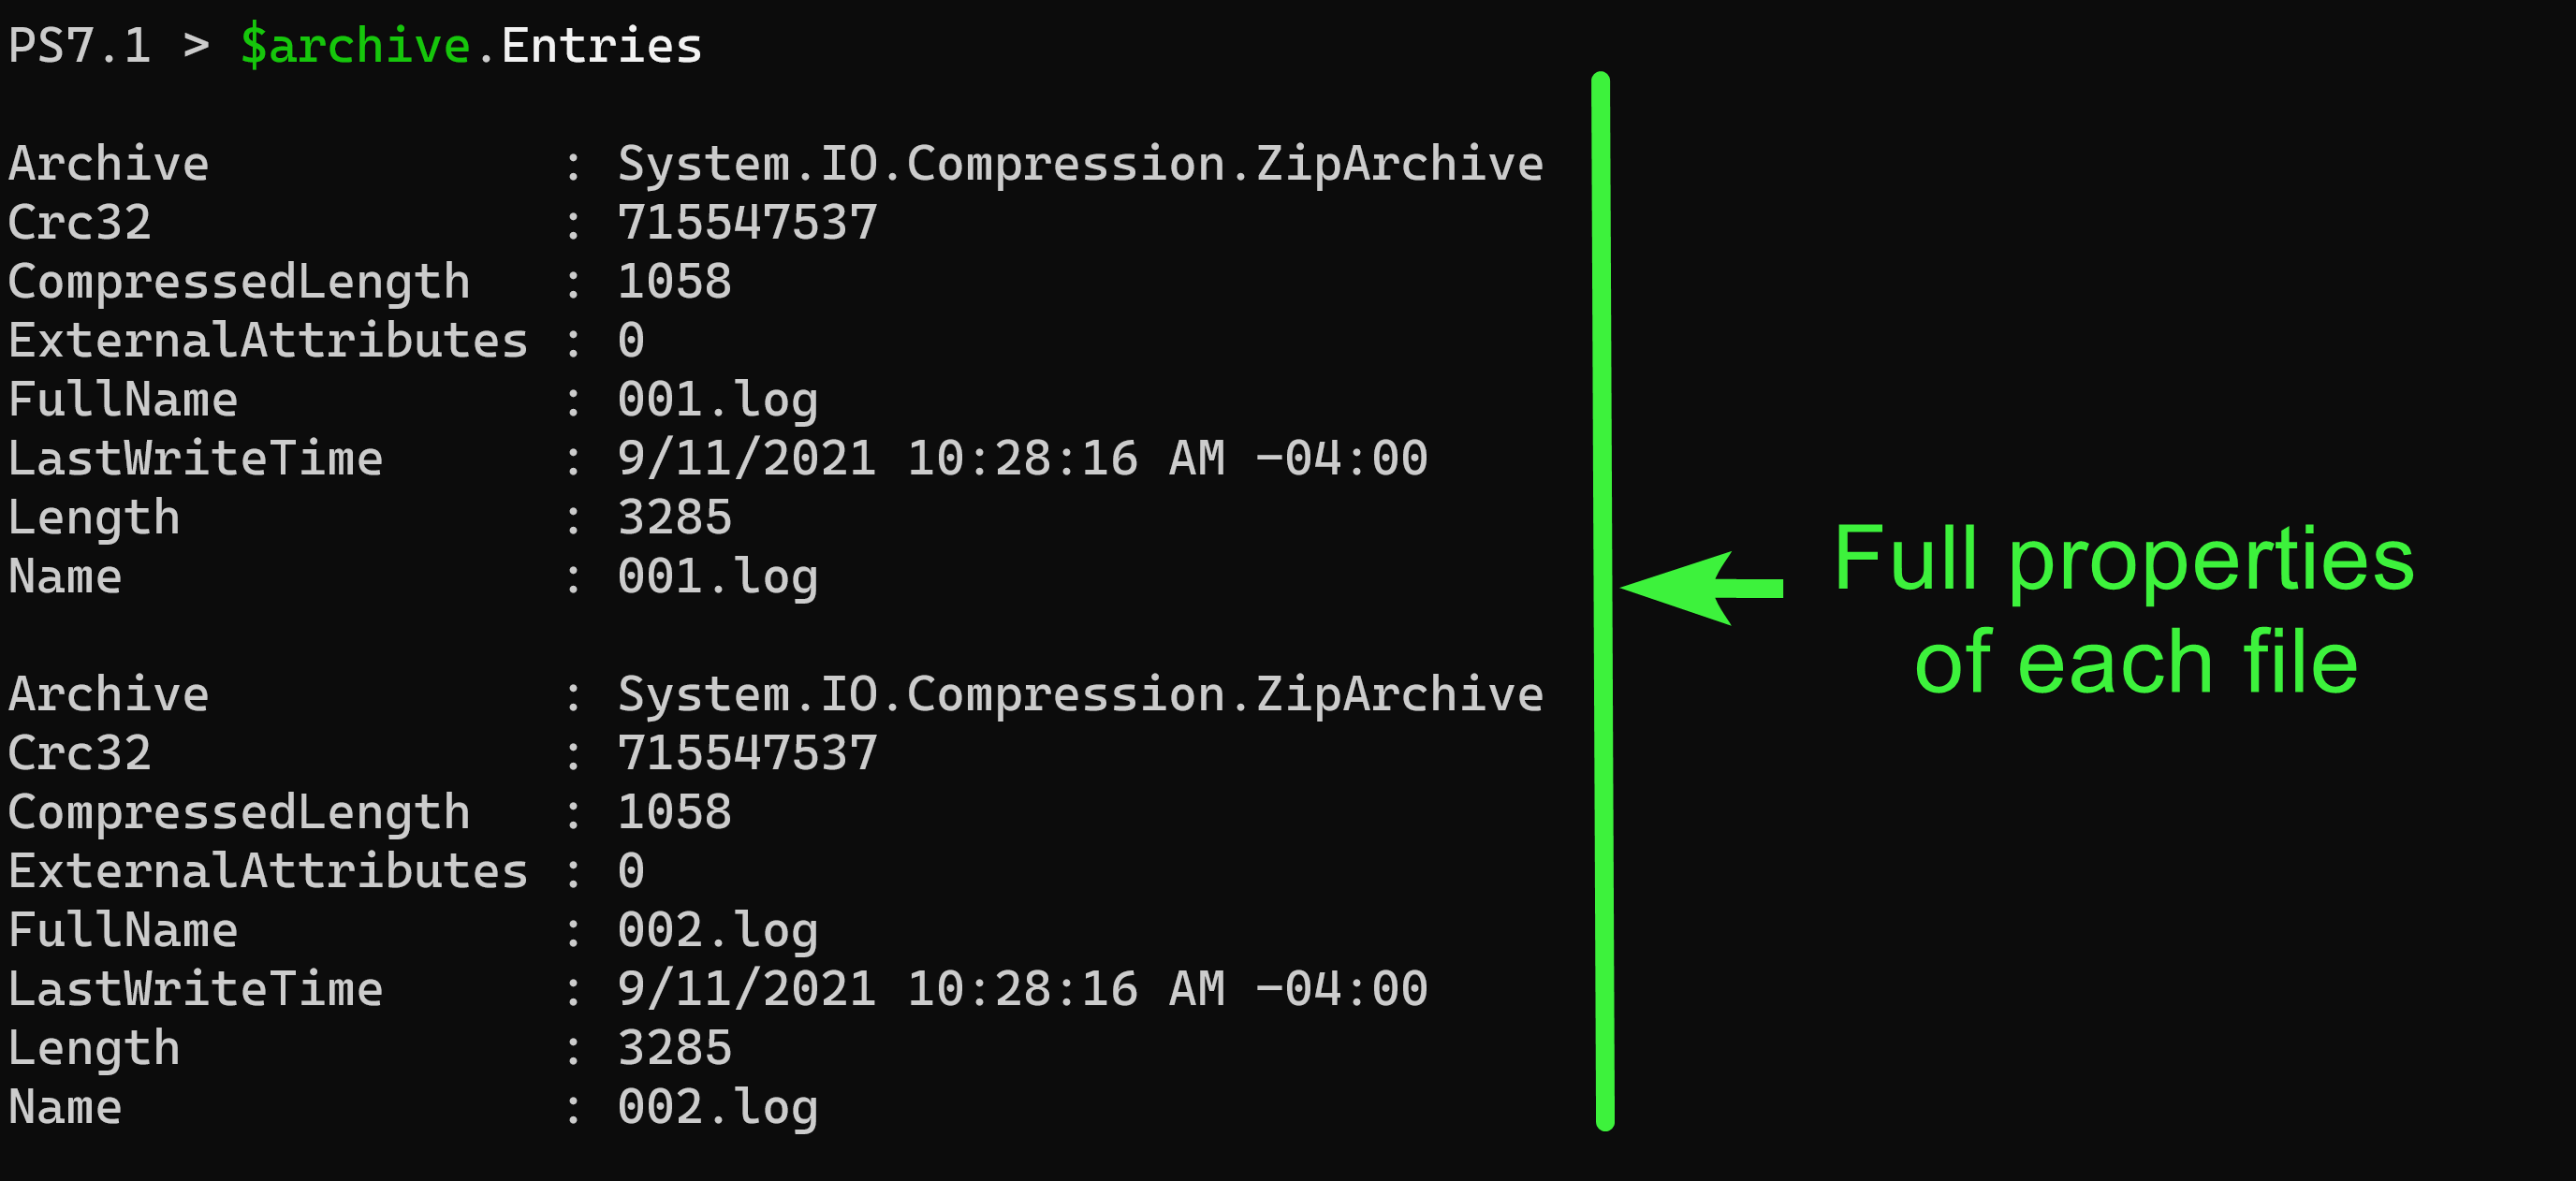 Listing Compressed Files and their Properties without Extracting Them